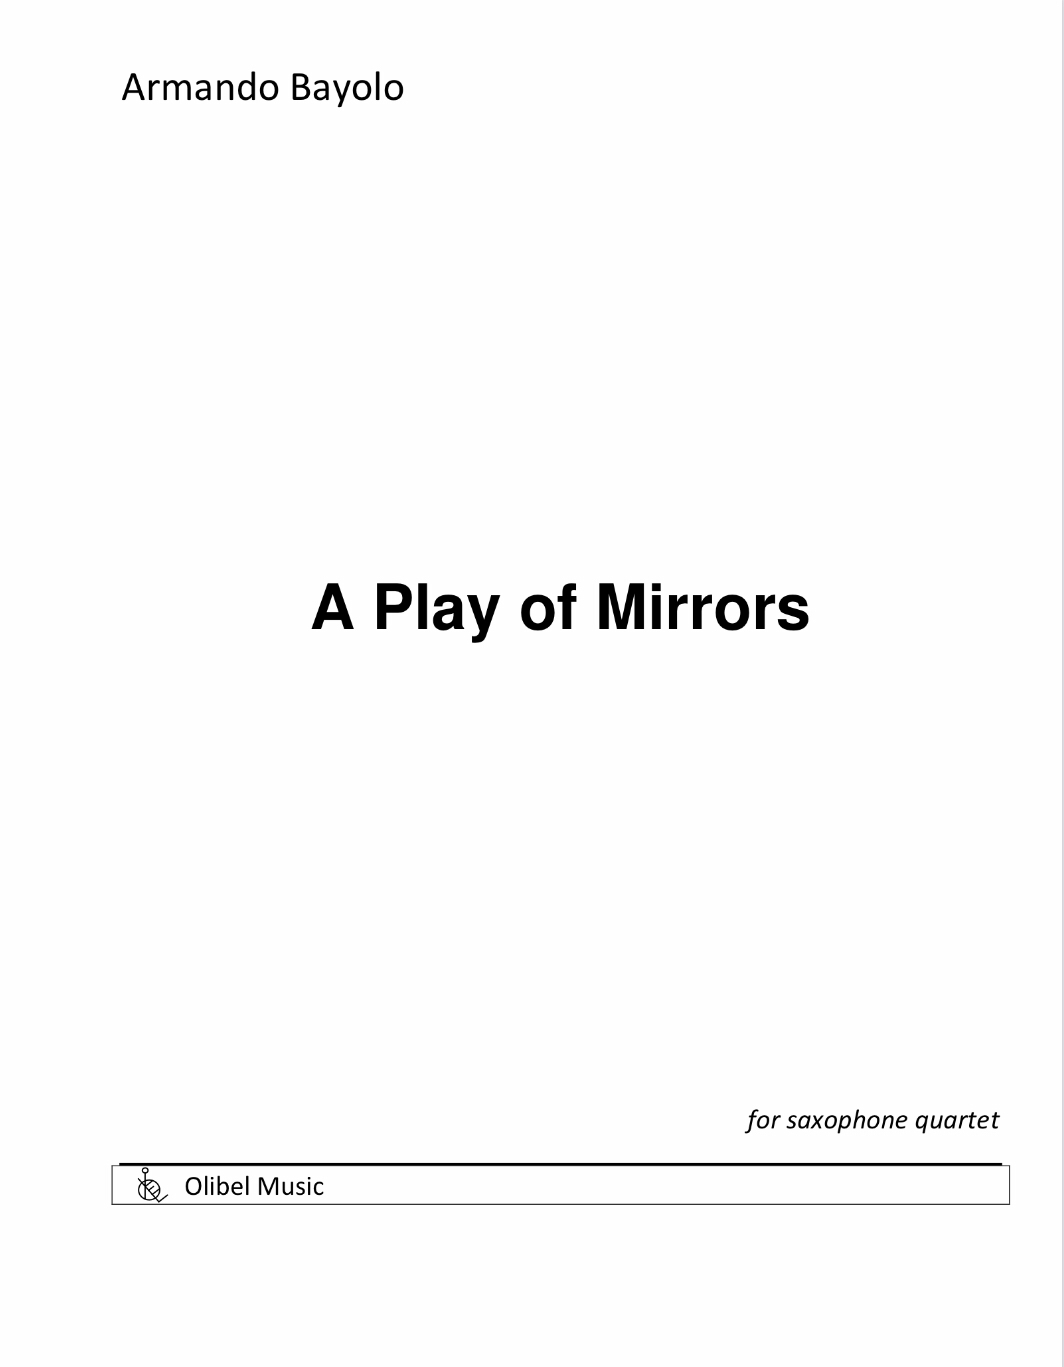 A Play Of Mirors by Armando Bayolo